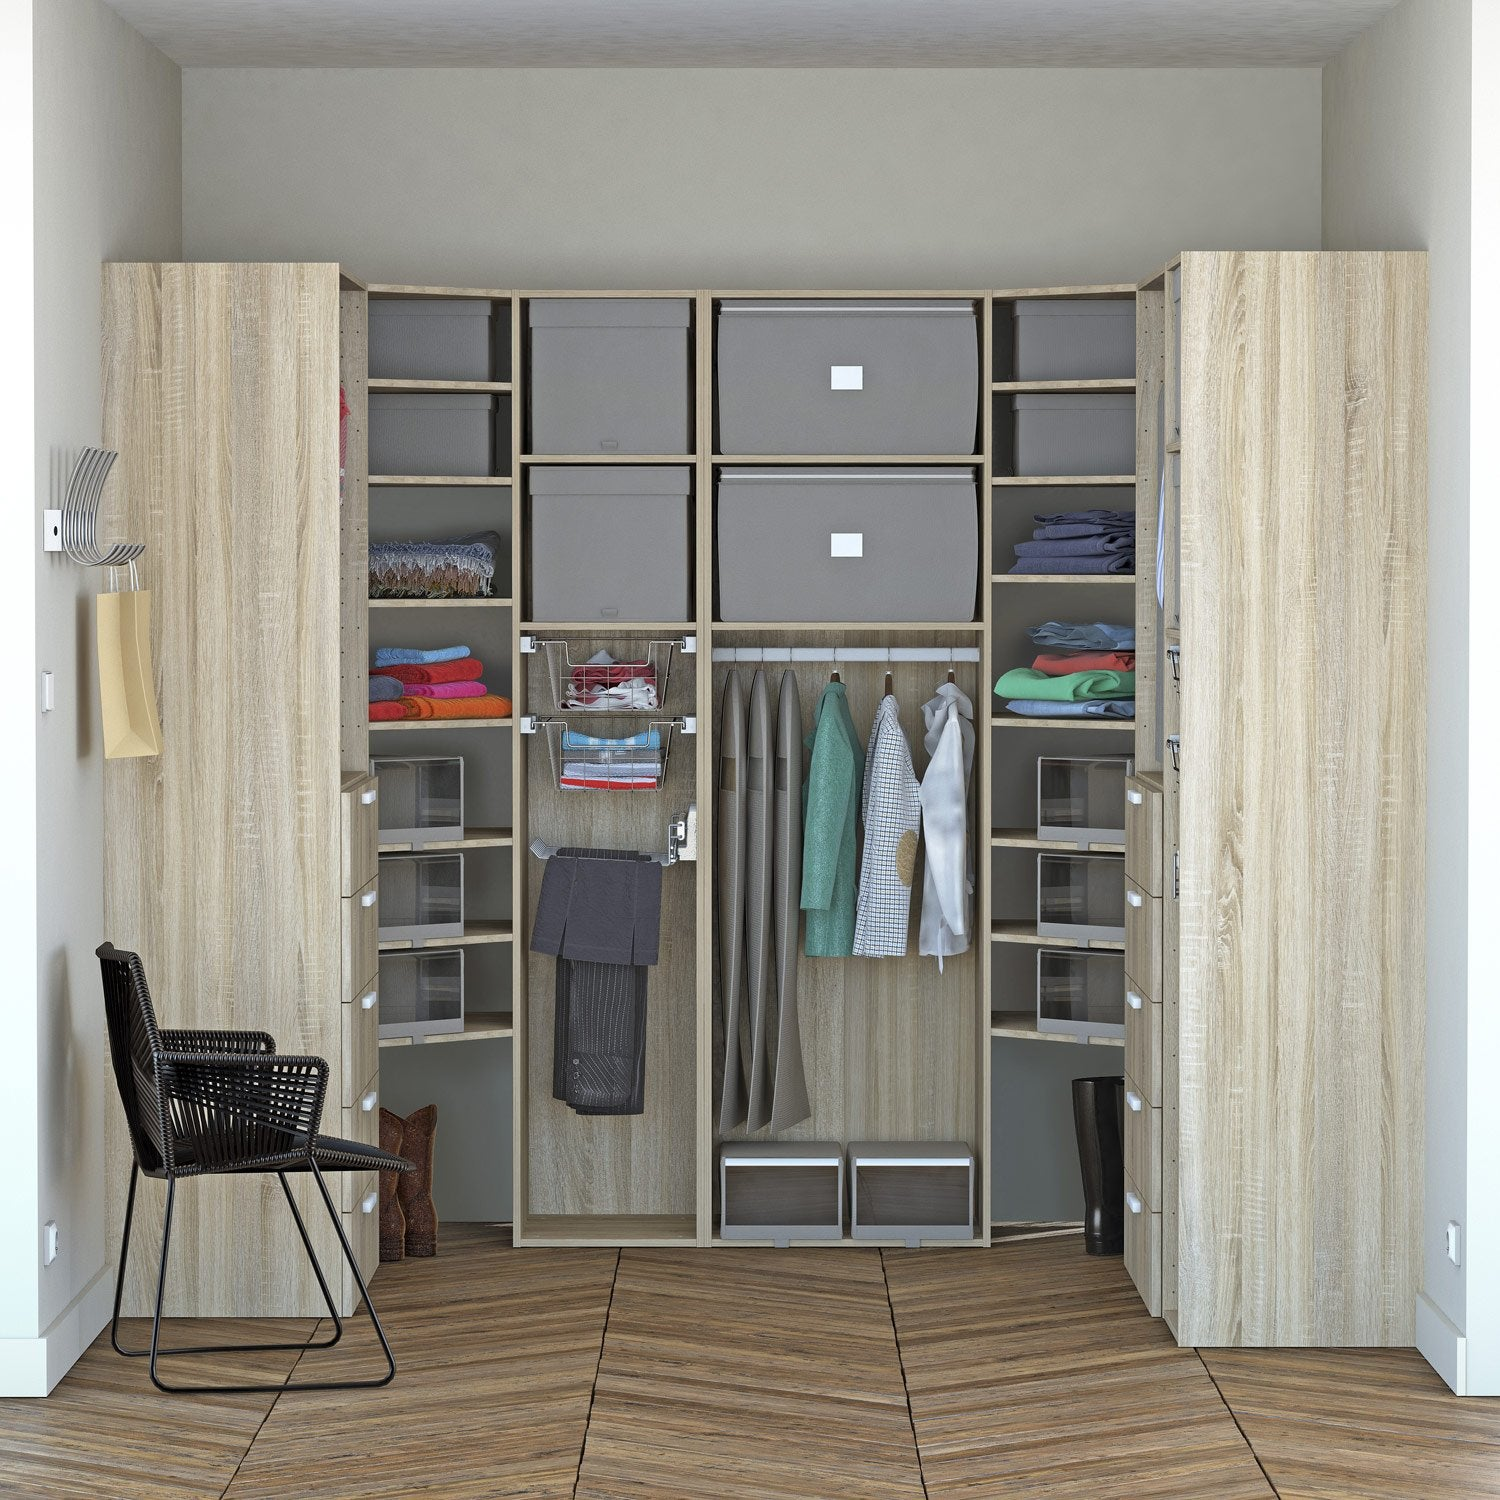 Dressing spaceo home effet ch ne leroy merlin for Dressing salle de bain leroy merlin